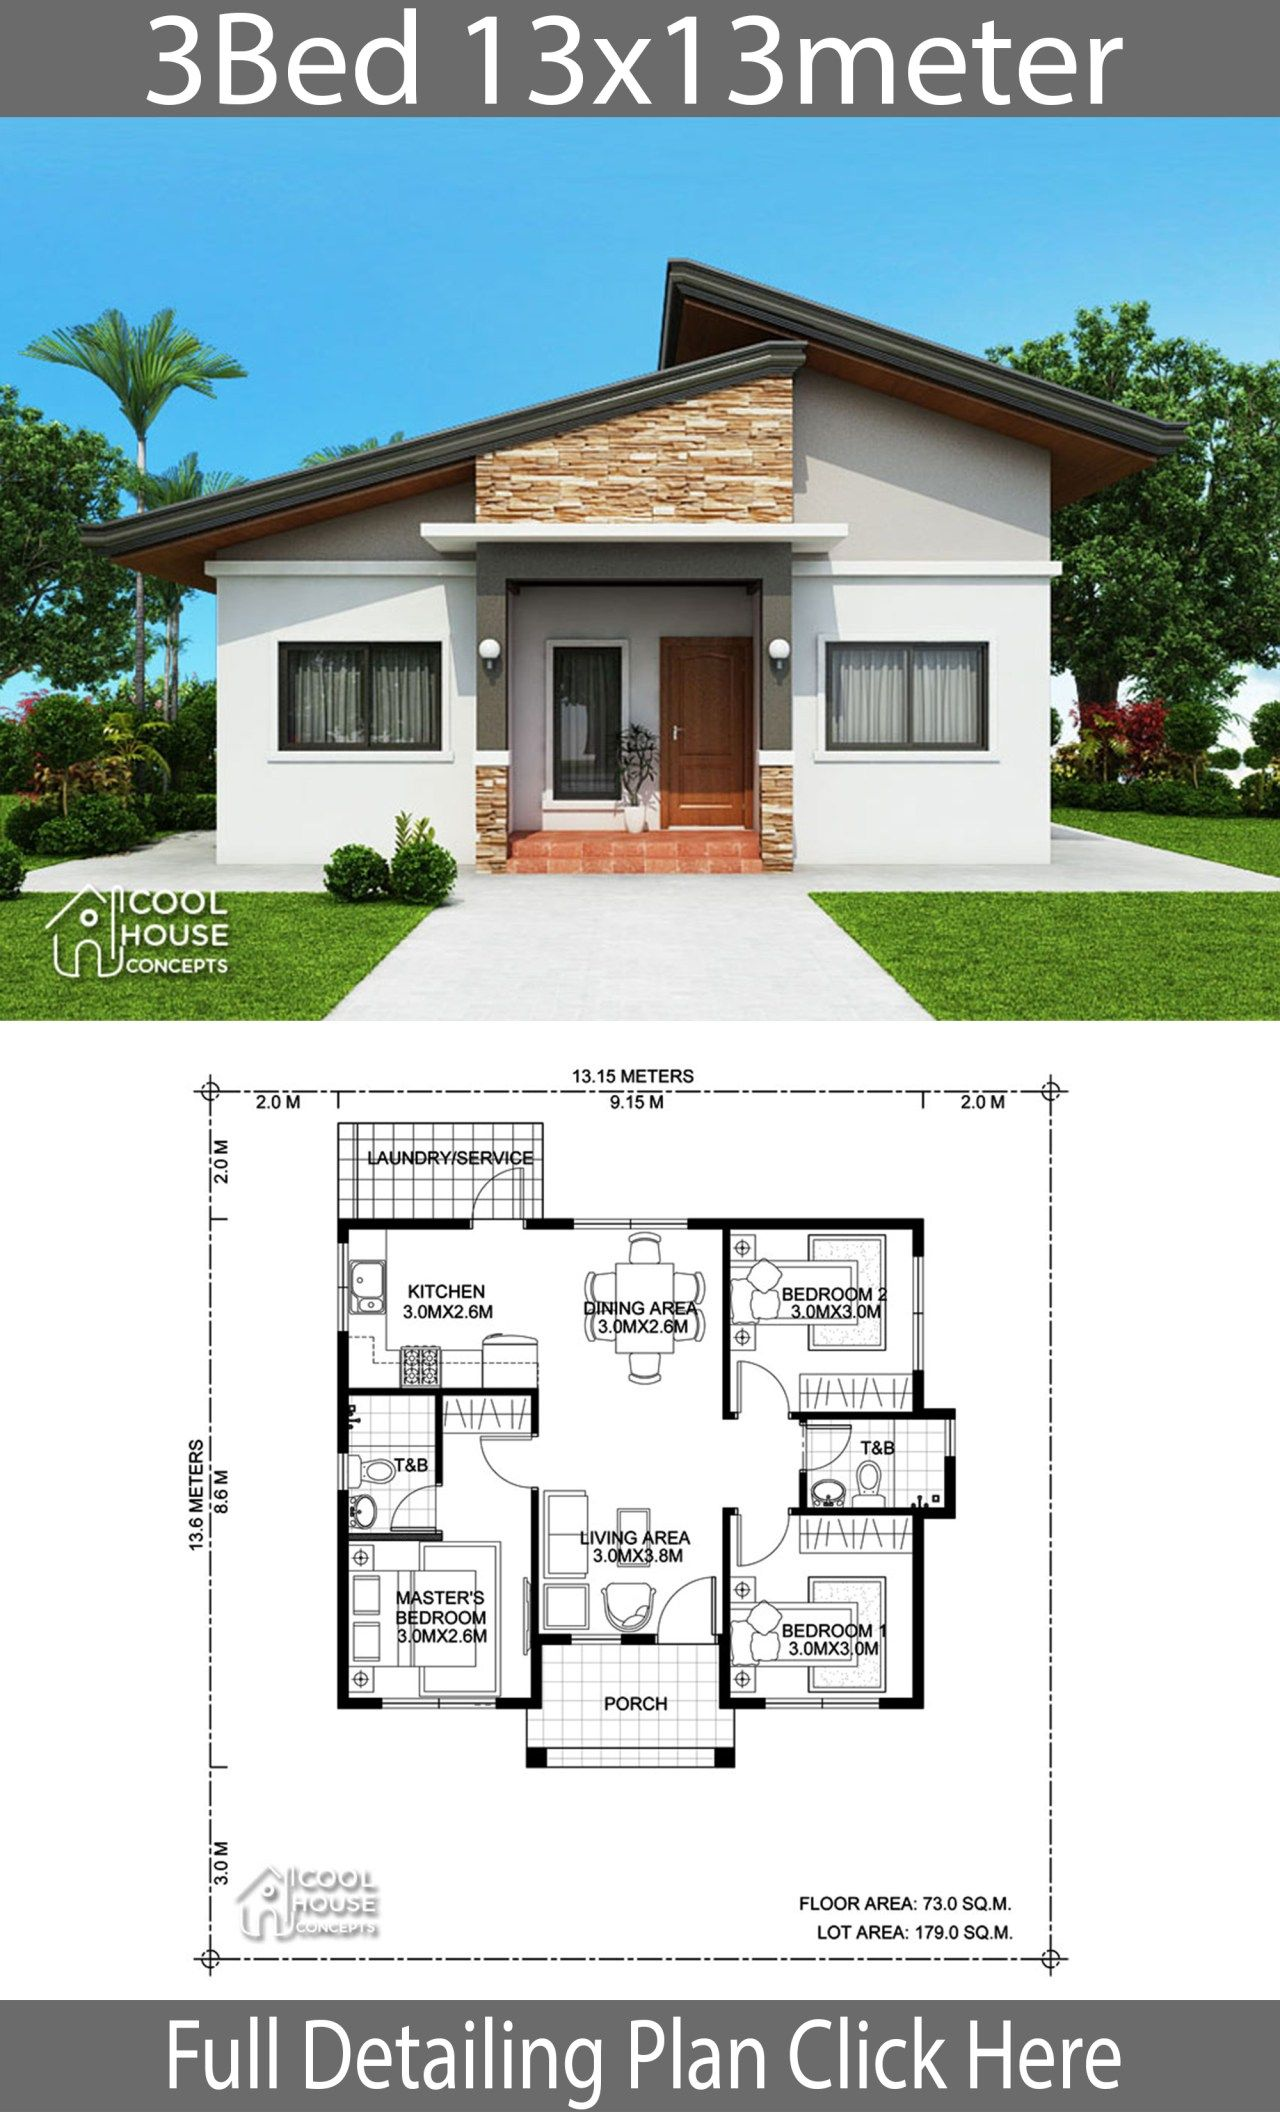 Home Design Plan 13x13m With 3 Bedrooms Modern Bungalow House